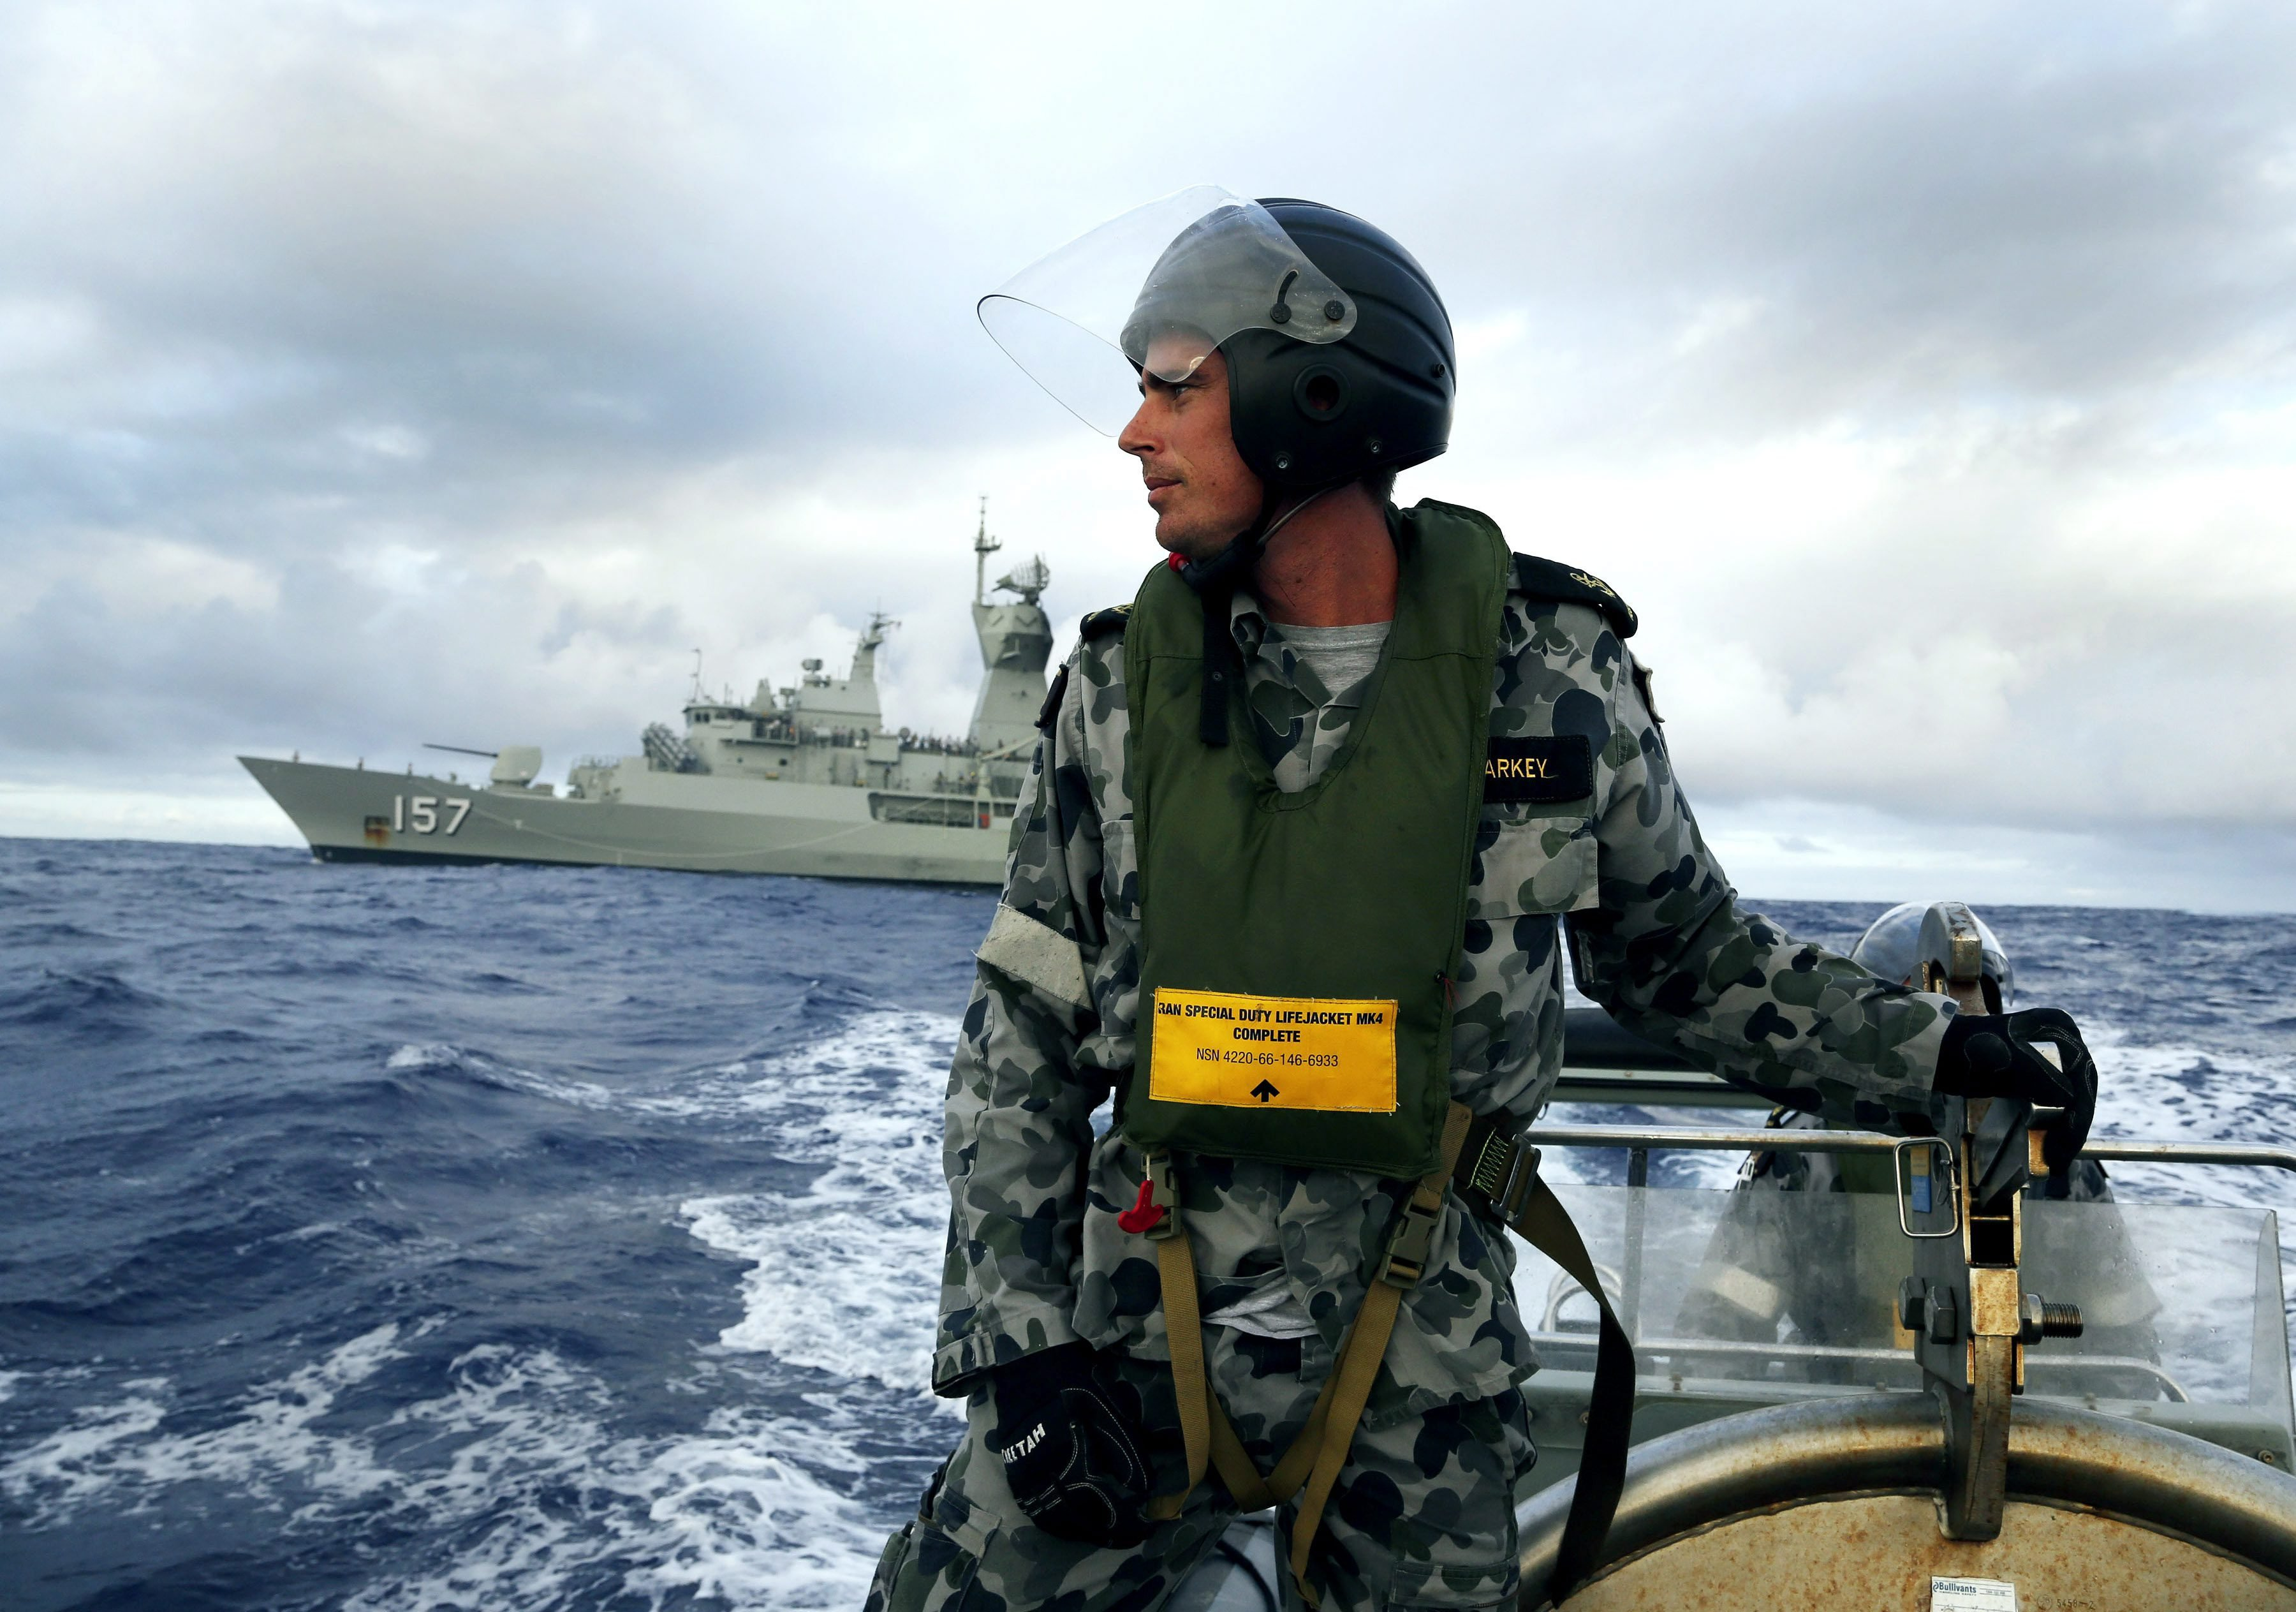 Leading Seaman, Boatswain's Mate, William Sharkey searching for debris in the Southern Indian Ocean on April 6, 2014.